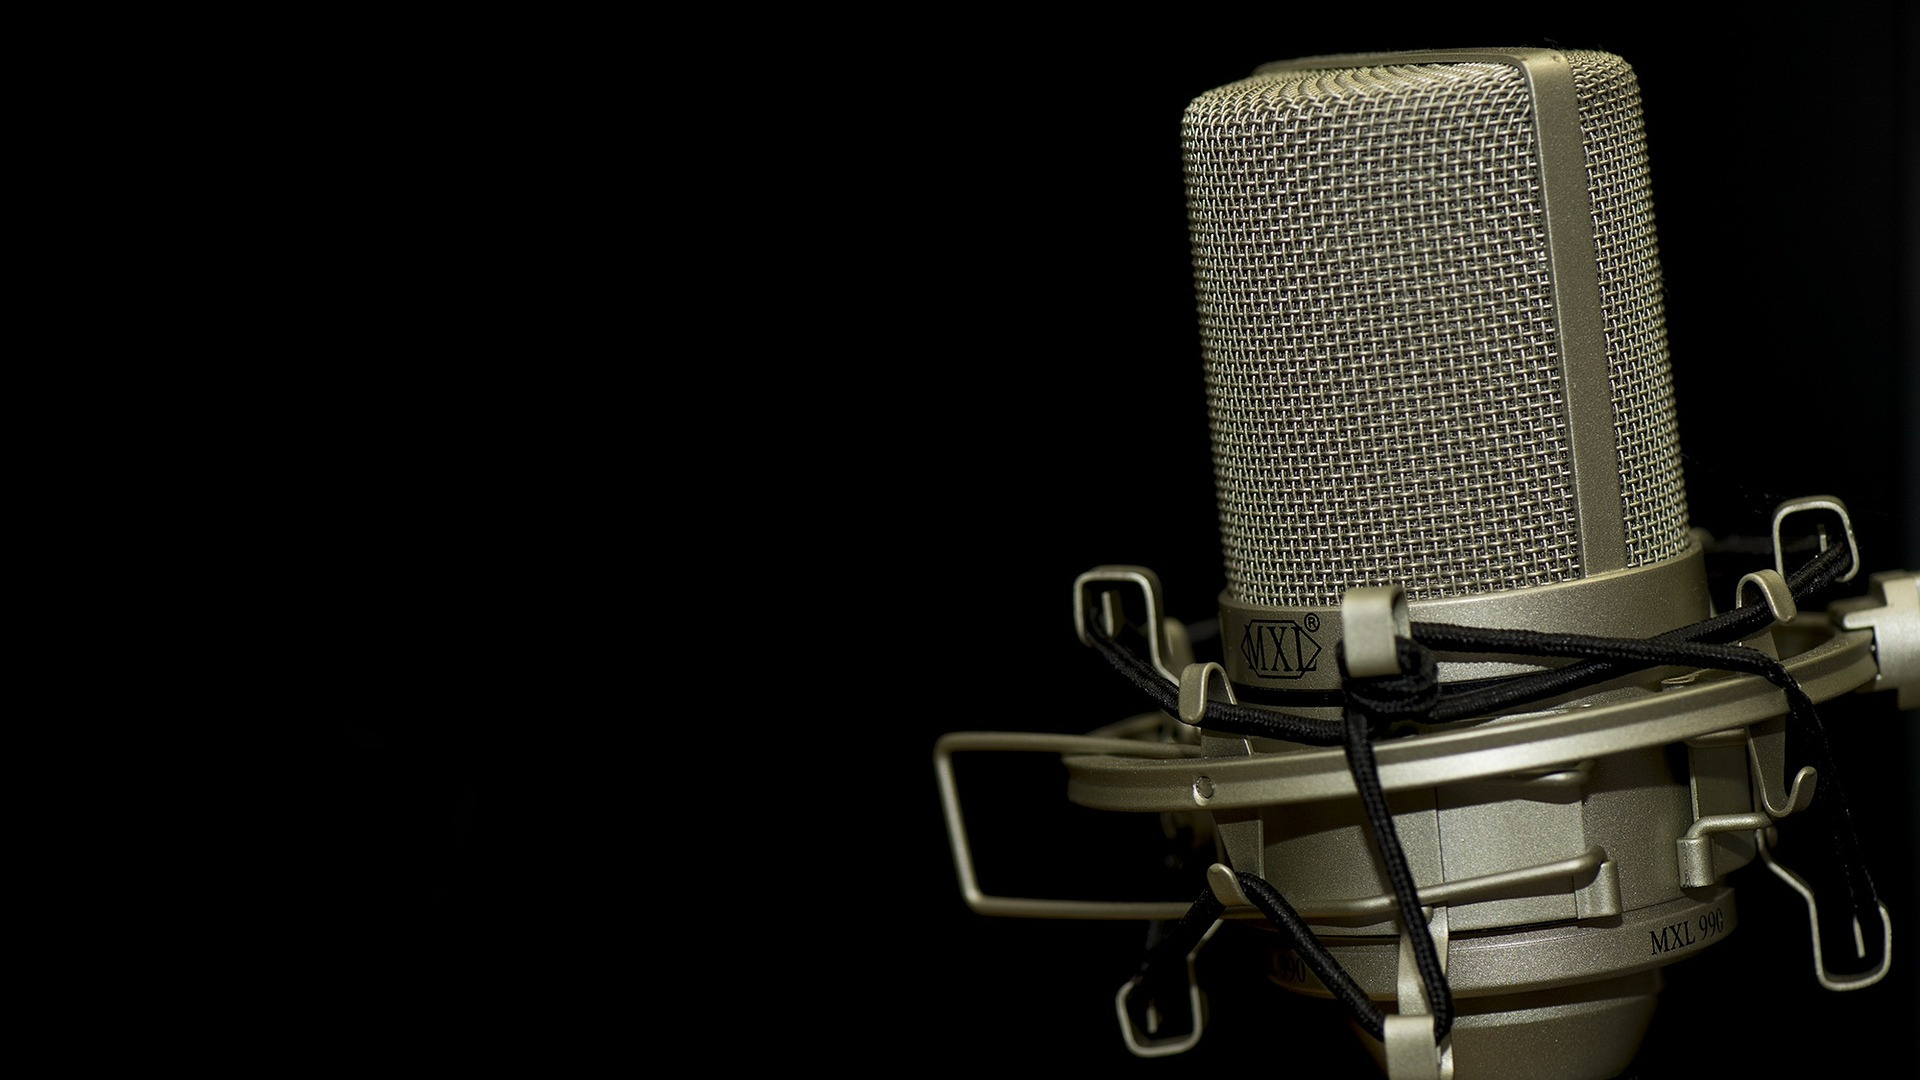 5 Key Things to Remember When Shifting from Commercial Voice Over to Audiobooks